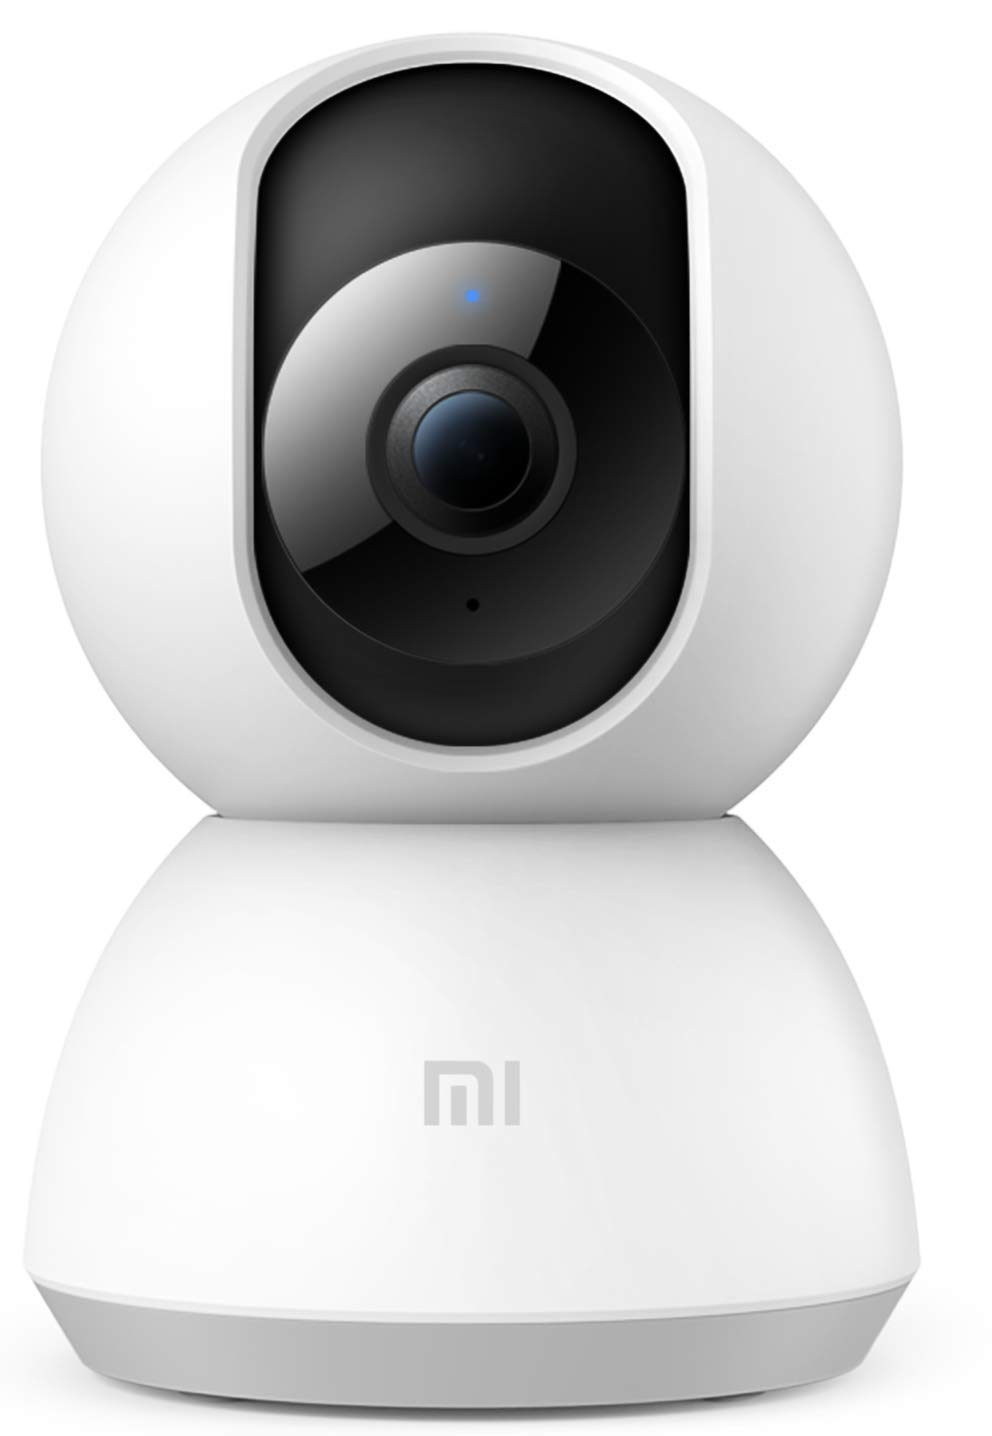 Mi MJSXJ02CM 360° 1080P WiFi Home Security Camera (White) product image